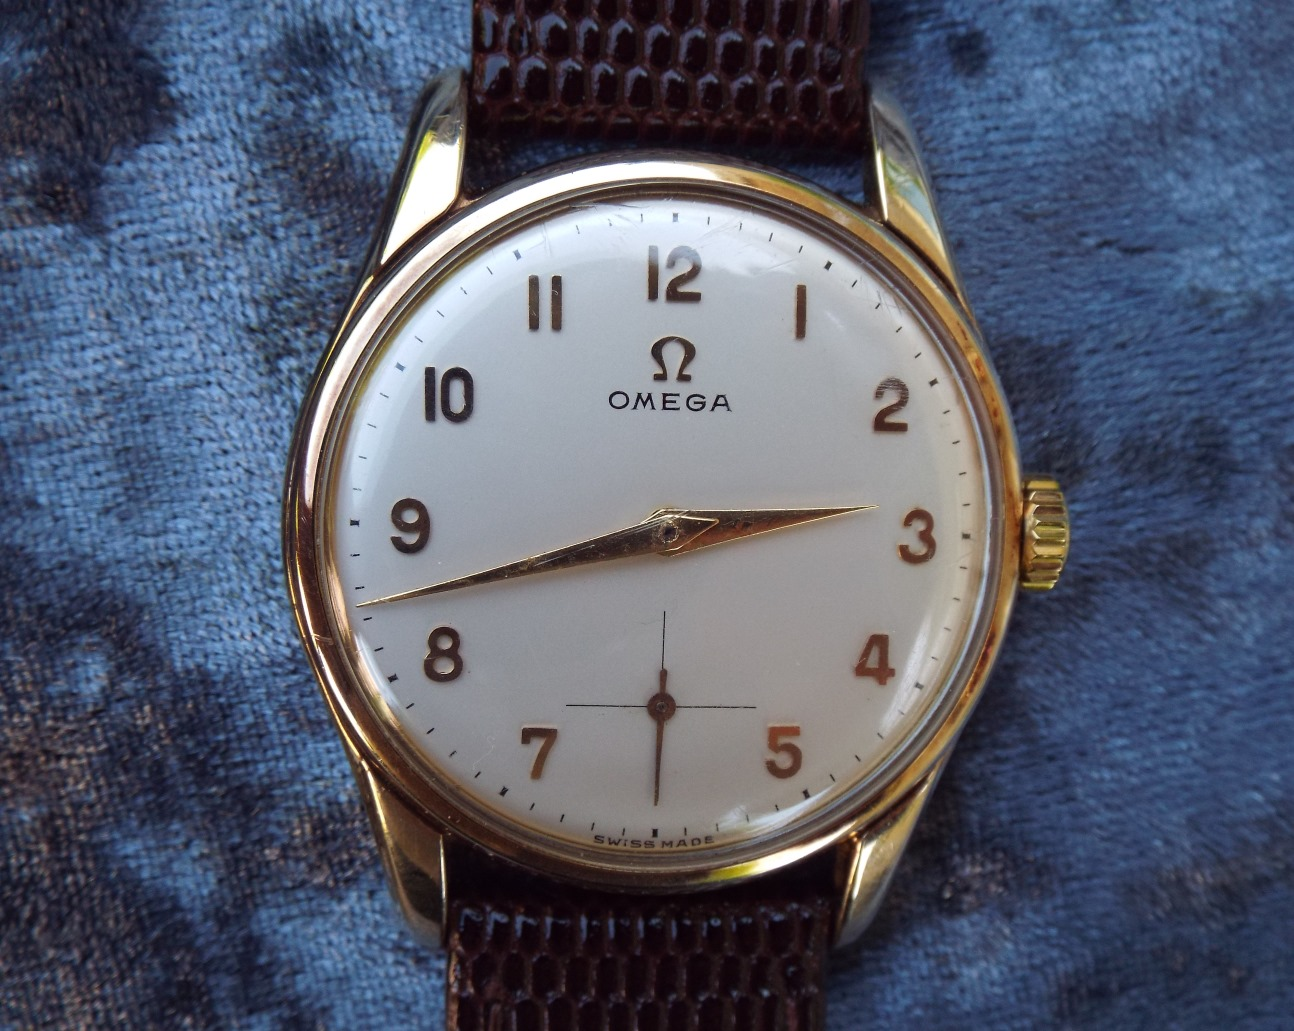 watches also bicompax the baltic hms wound wheel manual wind worn to rain chronographs making very completely looms a like modern review that over cloud movement runs concept column of counter and